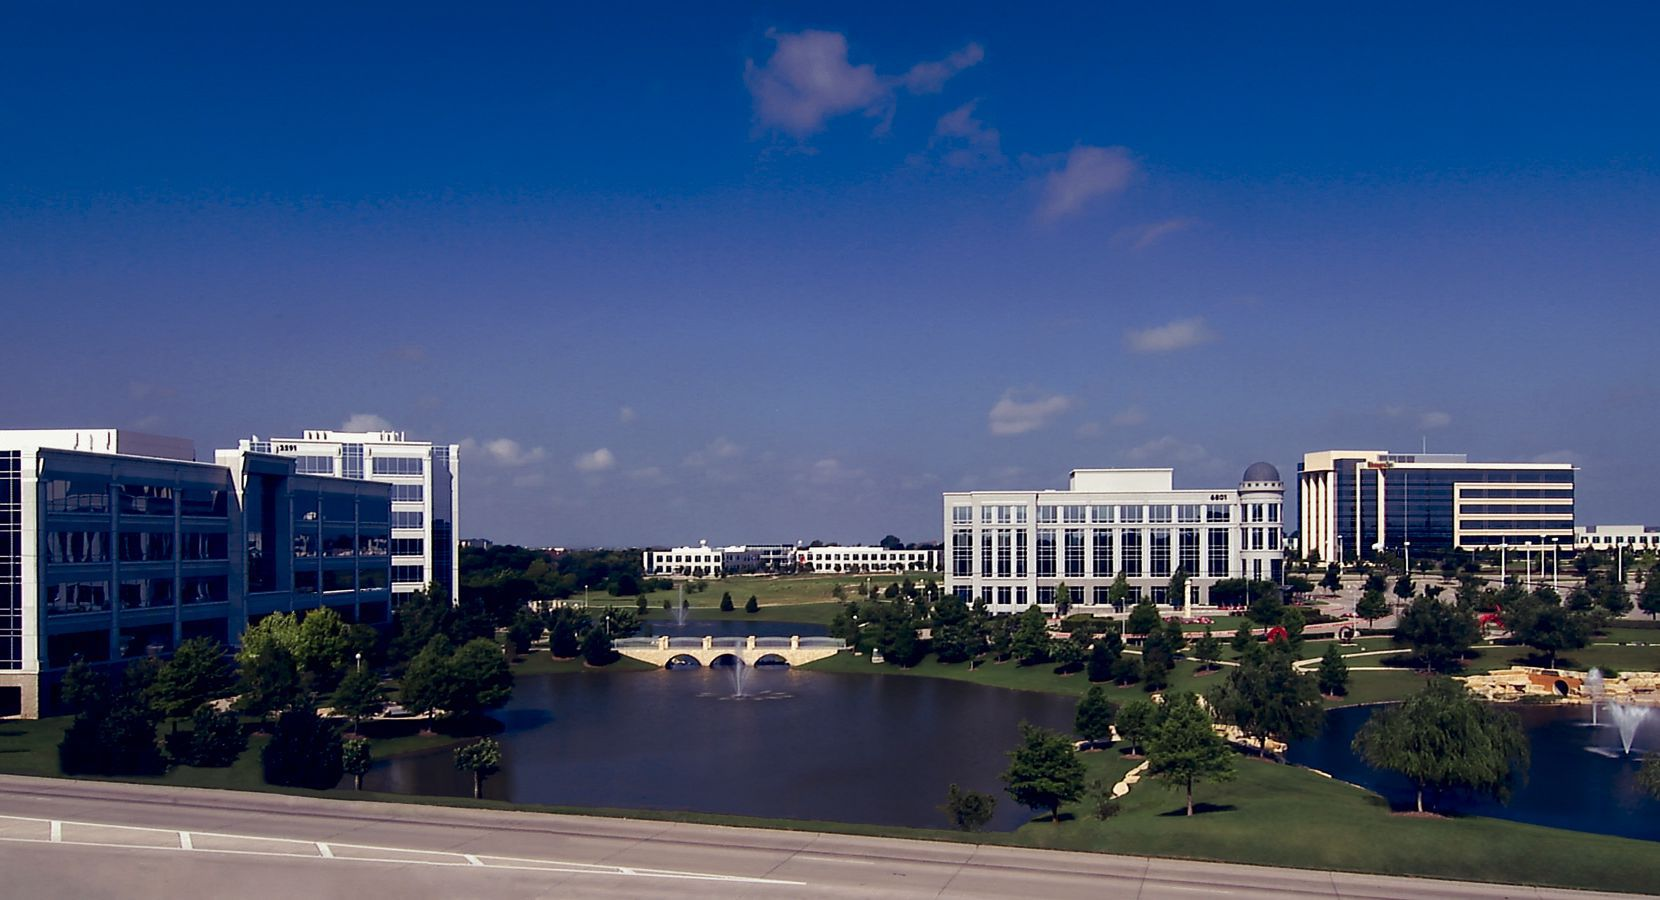 Hall Park is Frisco's largest office development with more than 2 million square feet of buildings.